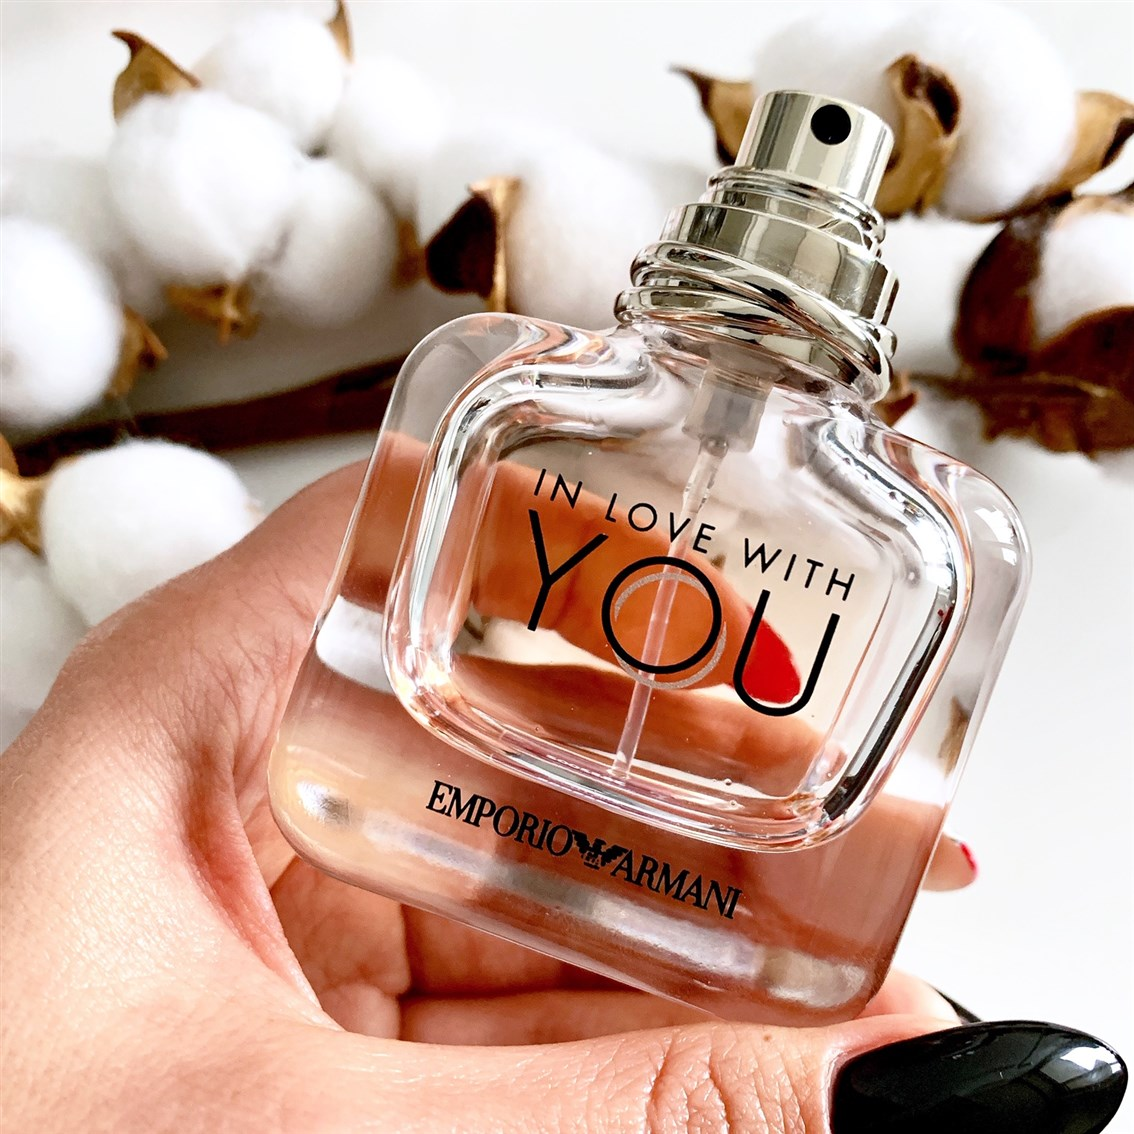 Emporio Armani In Love With You blog